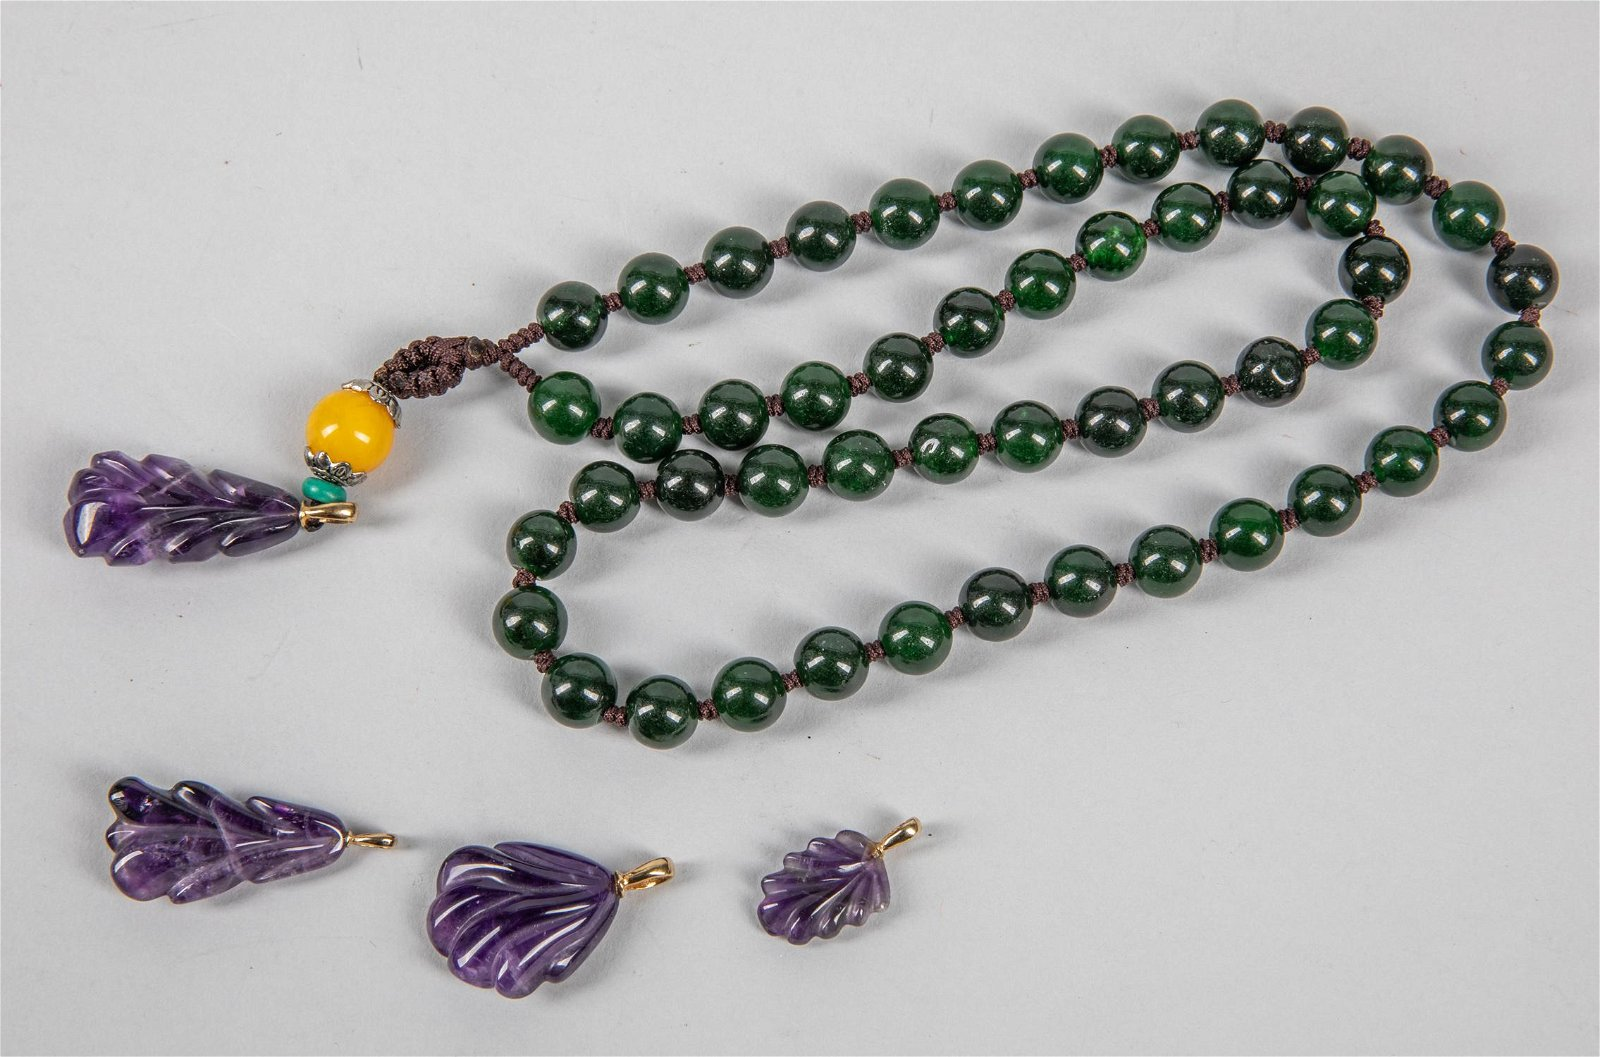 Chinese Export Jade & Amethyst Necklace